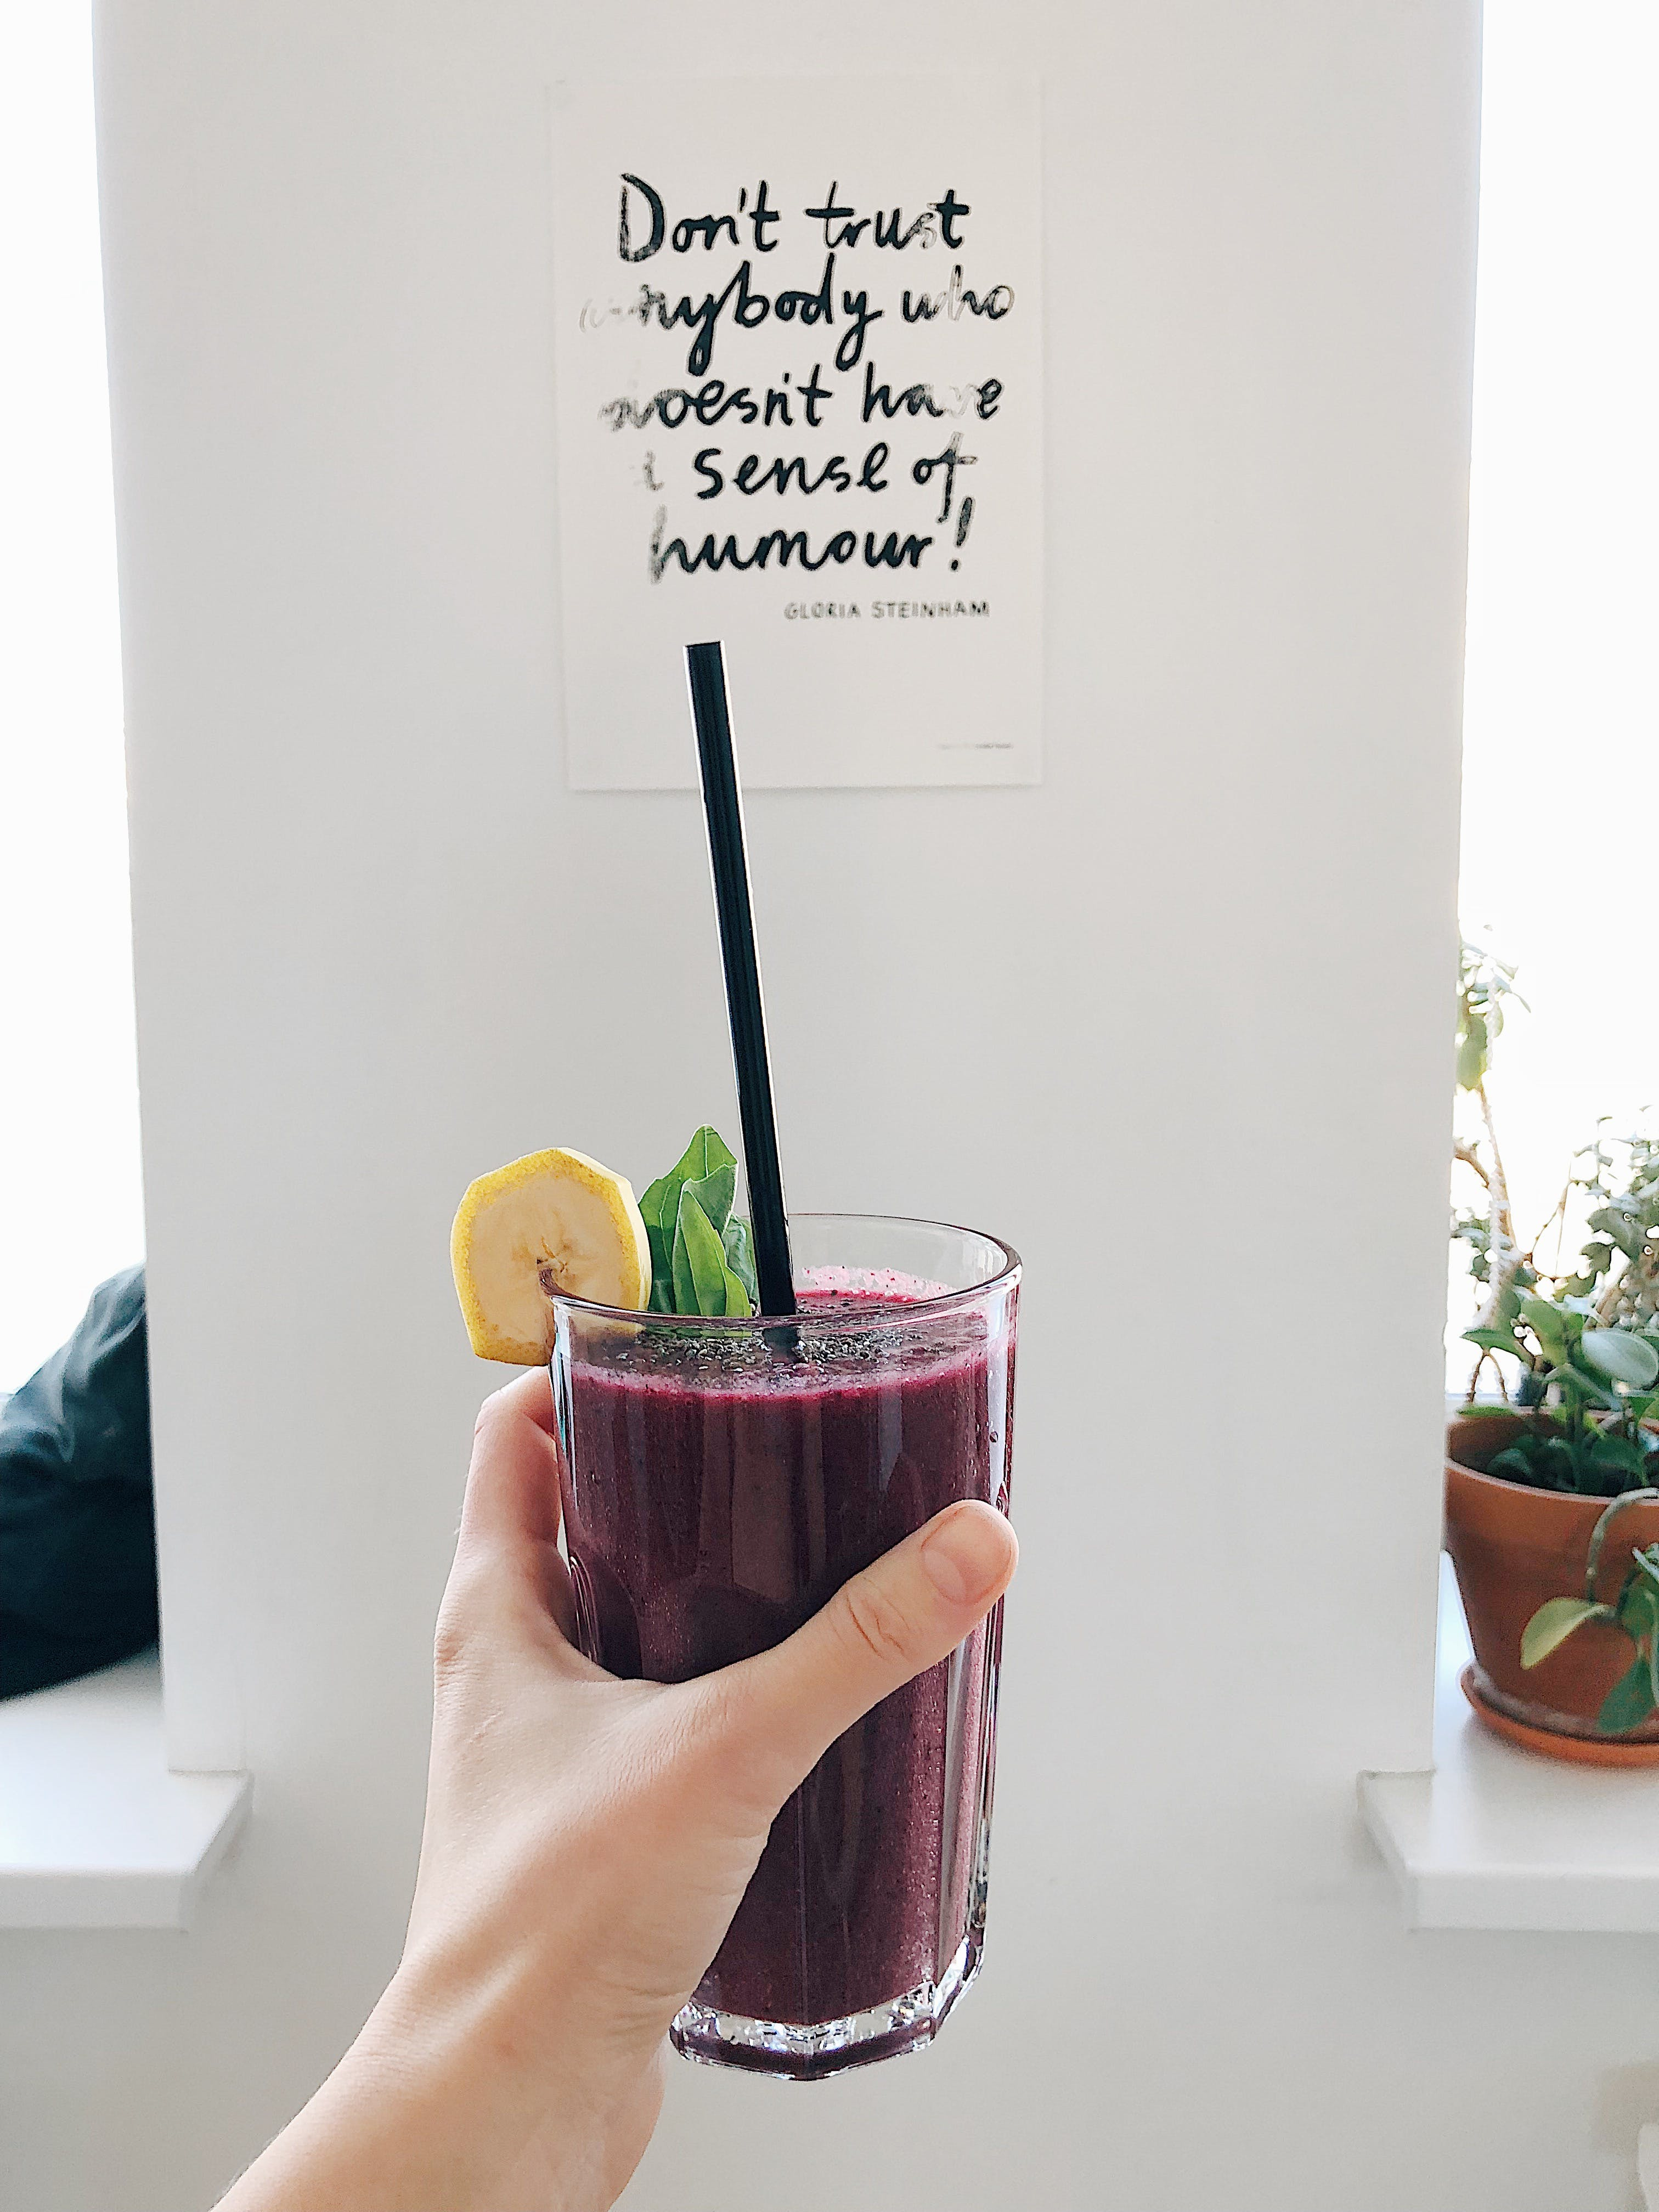 Person Holding Clear Drinking Glass With Purple Smoothie With Quotation Decor